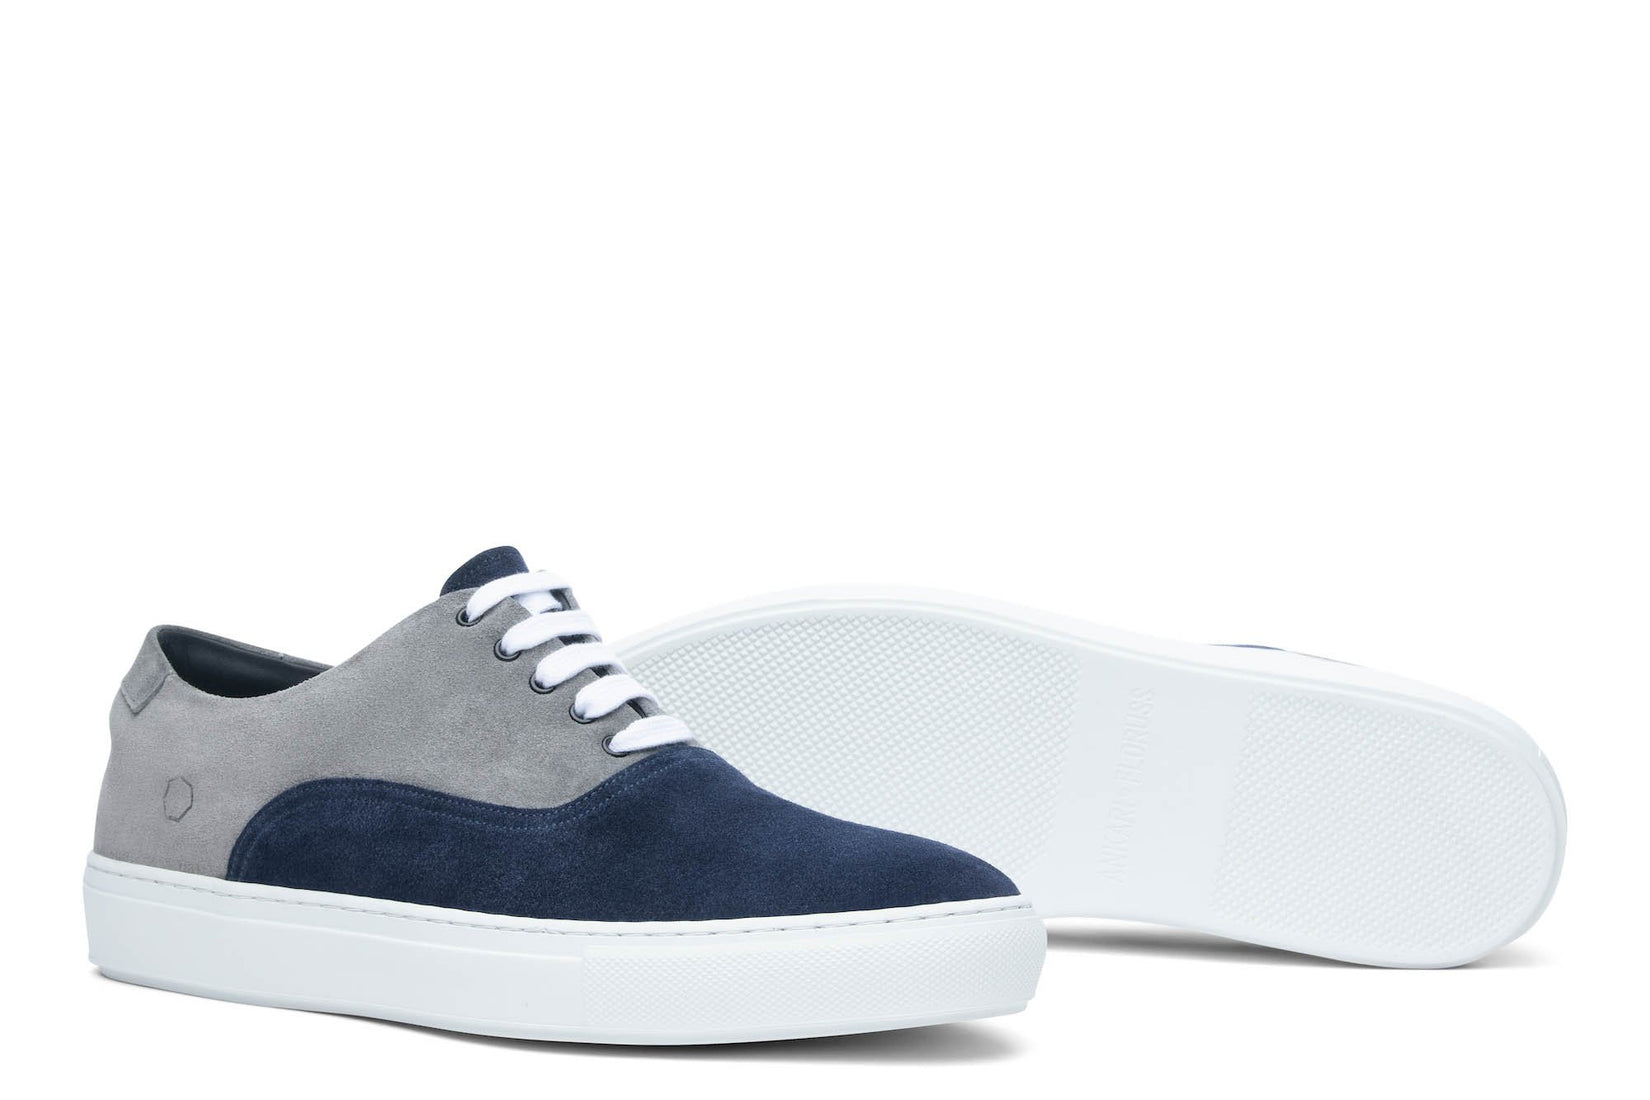 Sunday Two-Tone Skater Sneaker Navy/Grey